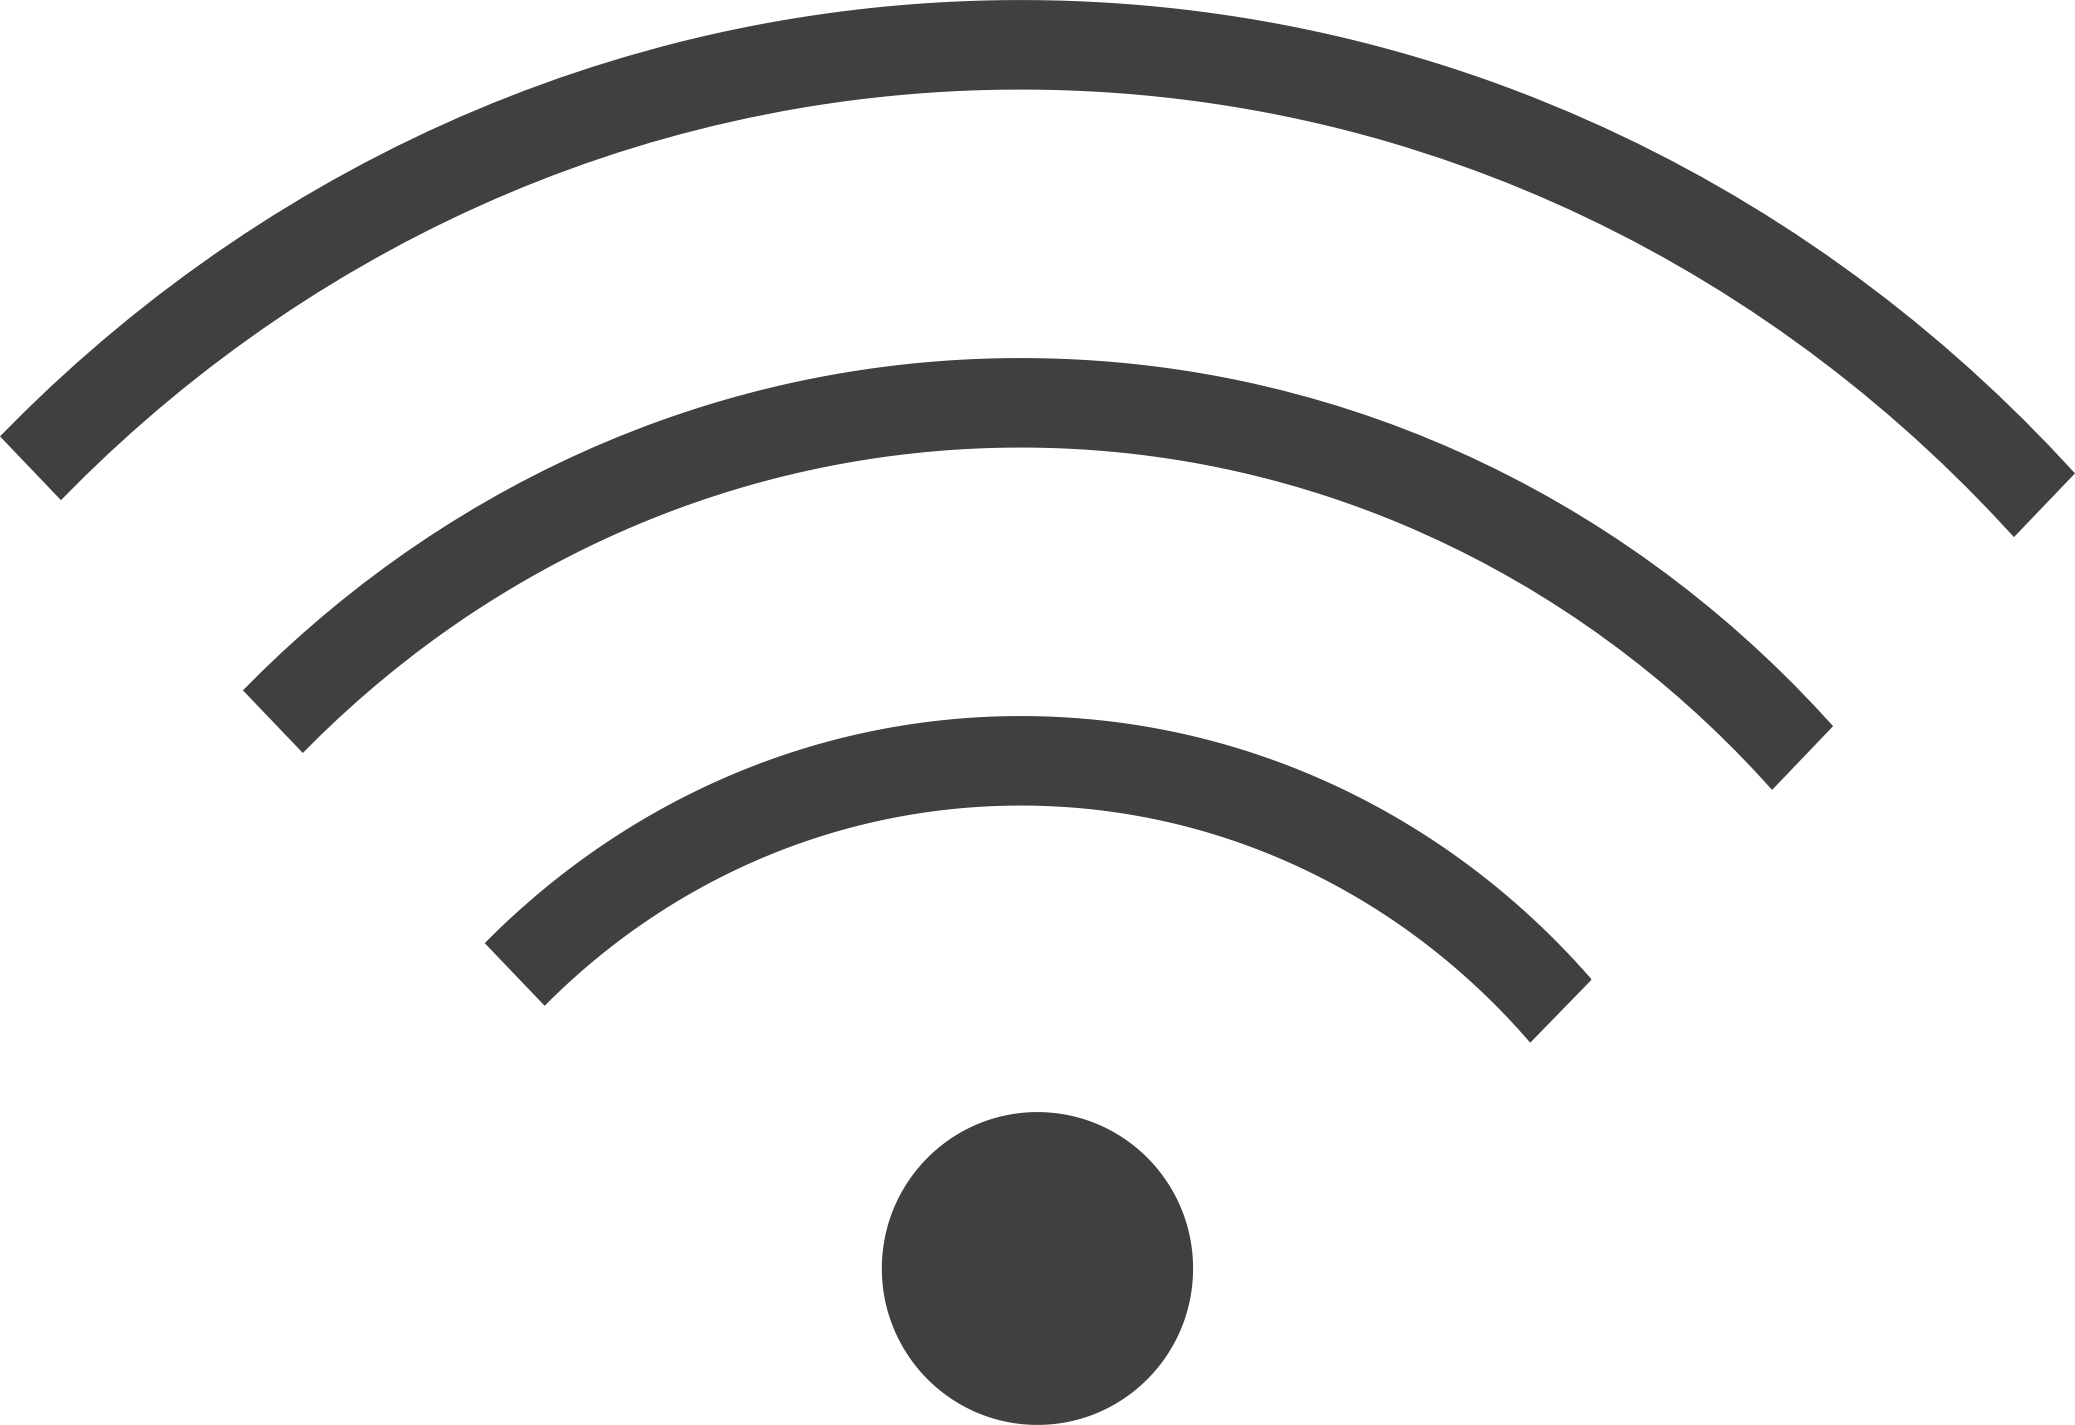 Wifi clipart png. Icon black image purepng